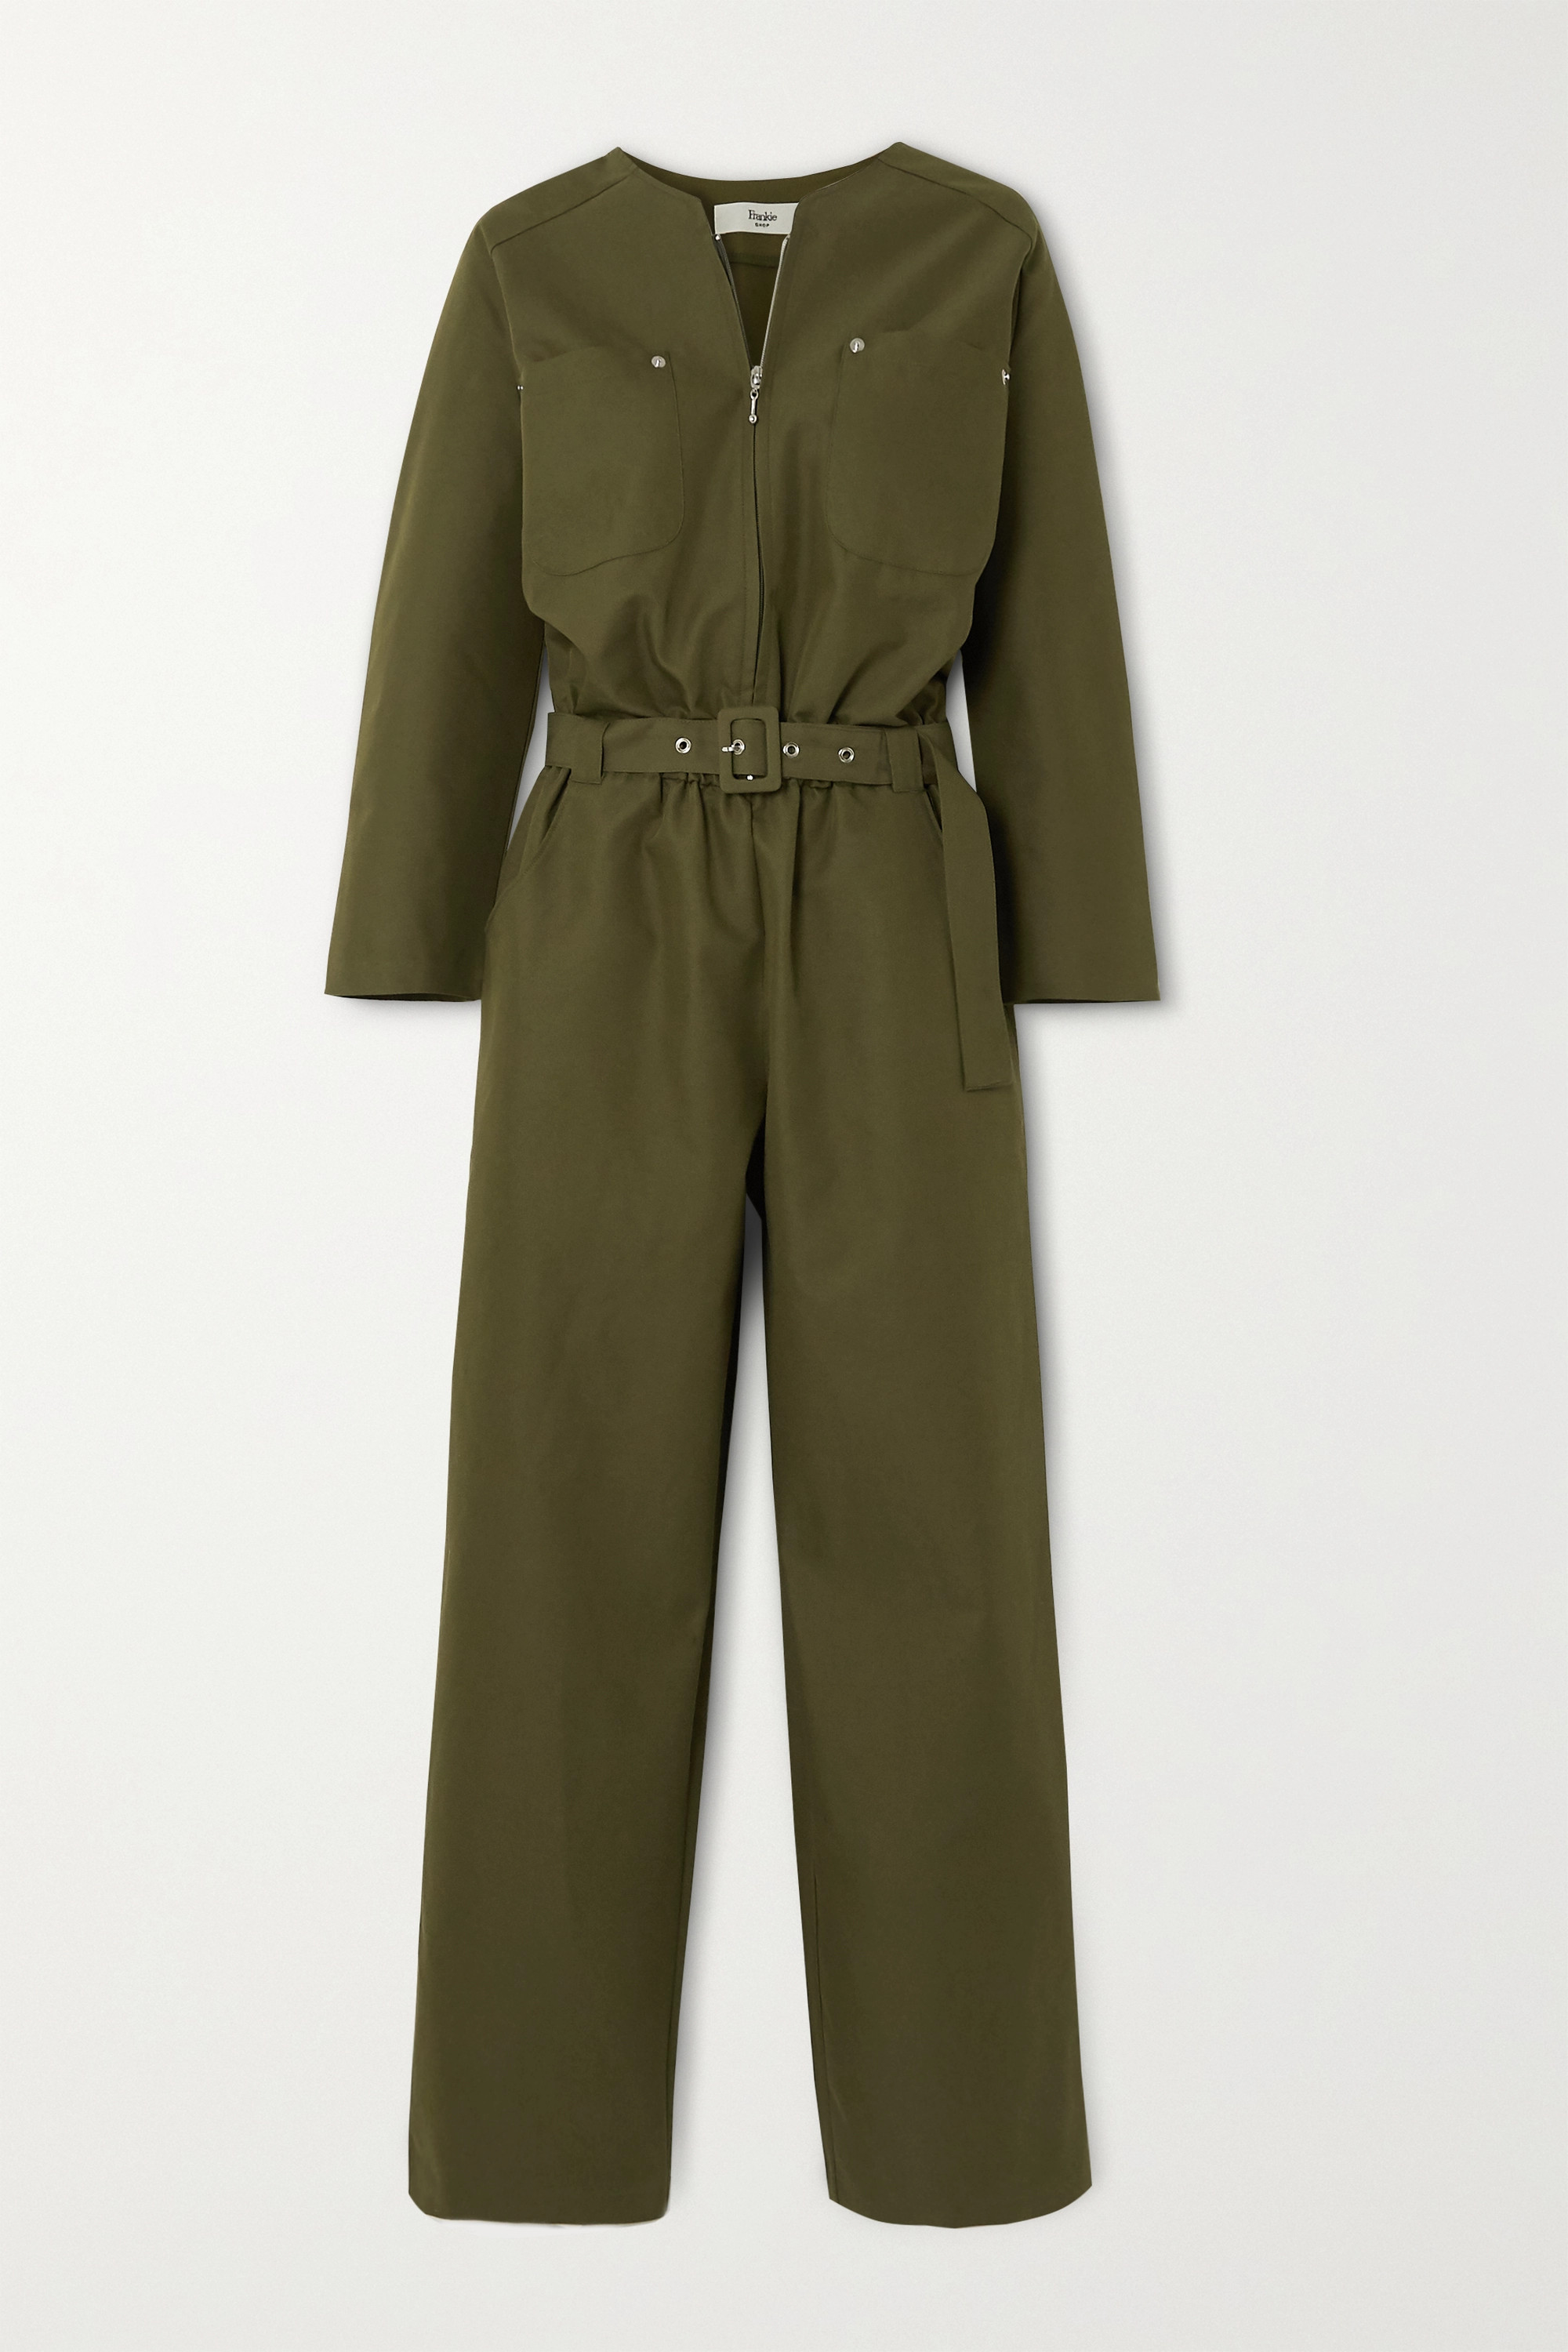 Frankie Shop Eve belted cotton-blend jumpsuit